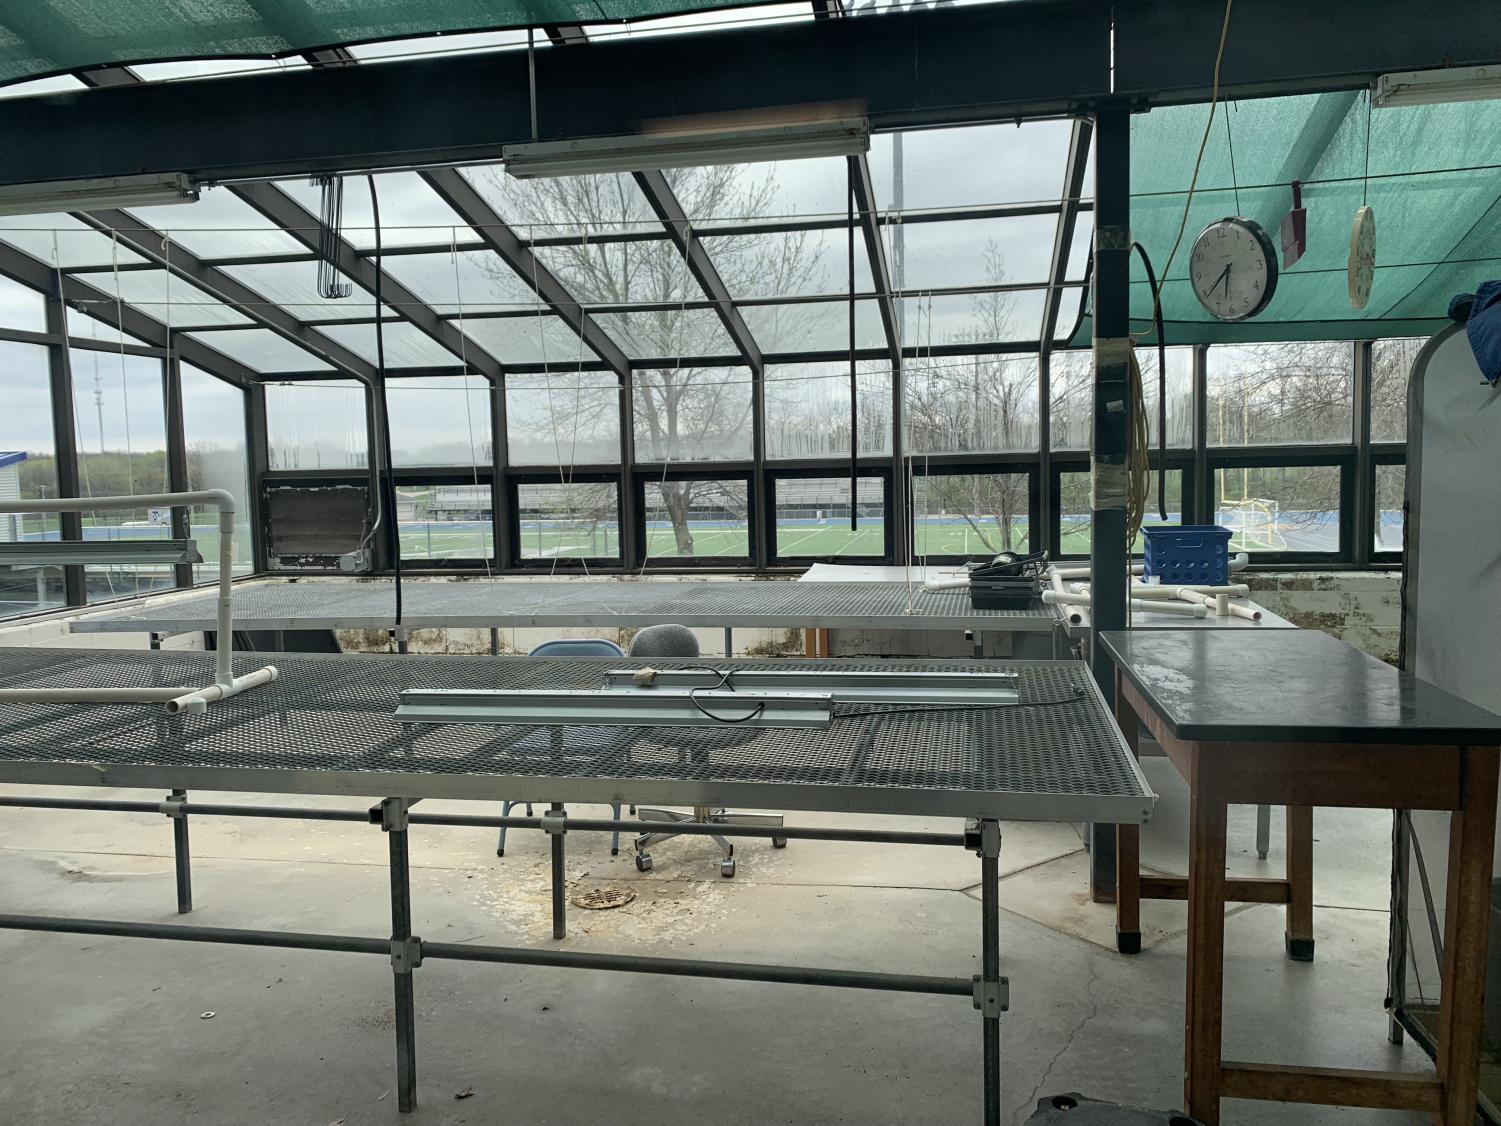 The main greenhouse on the first floor has been empty and in disuse for quite some time.